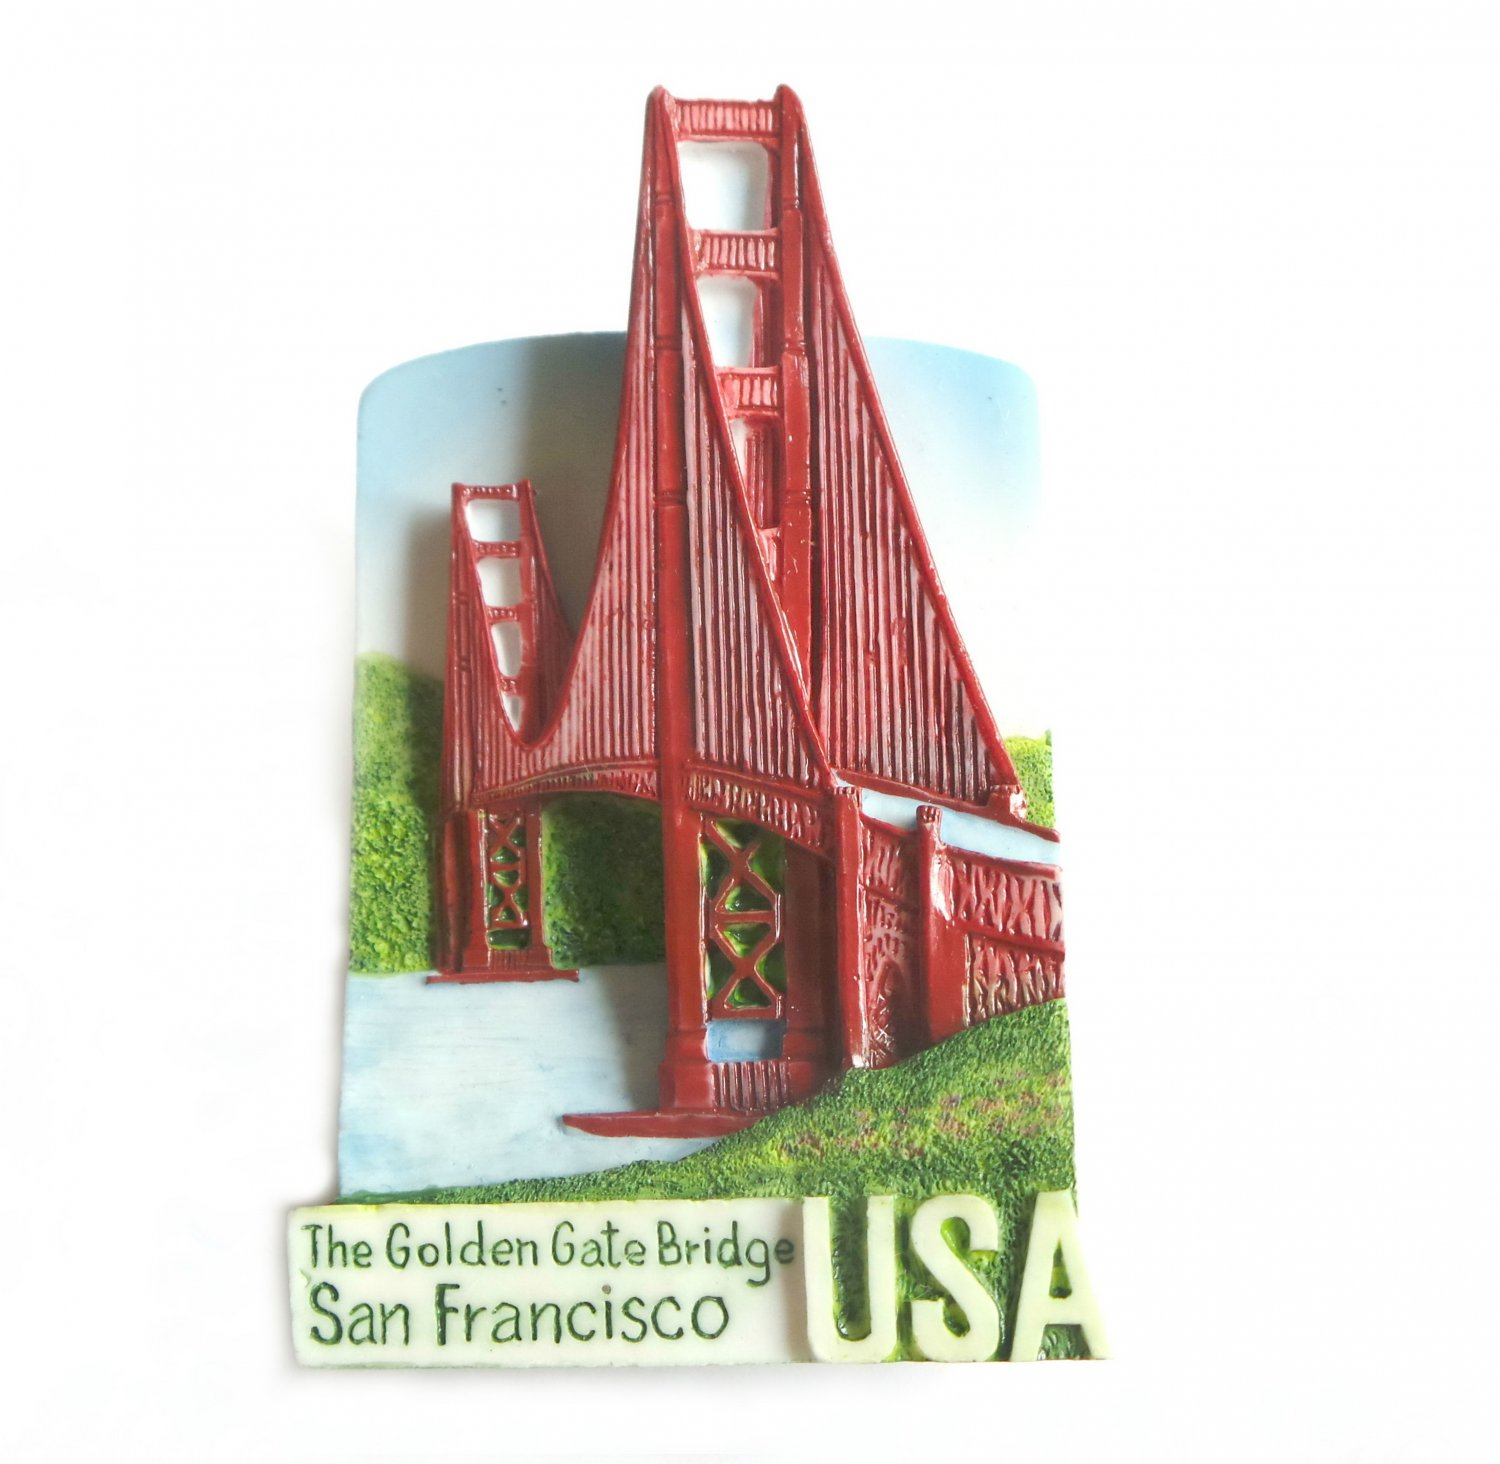 Golden Gate Bridge, SAN FRANCISCO USA, Resin 3D Fridge Magnet